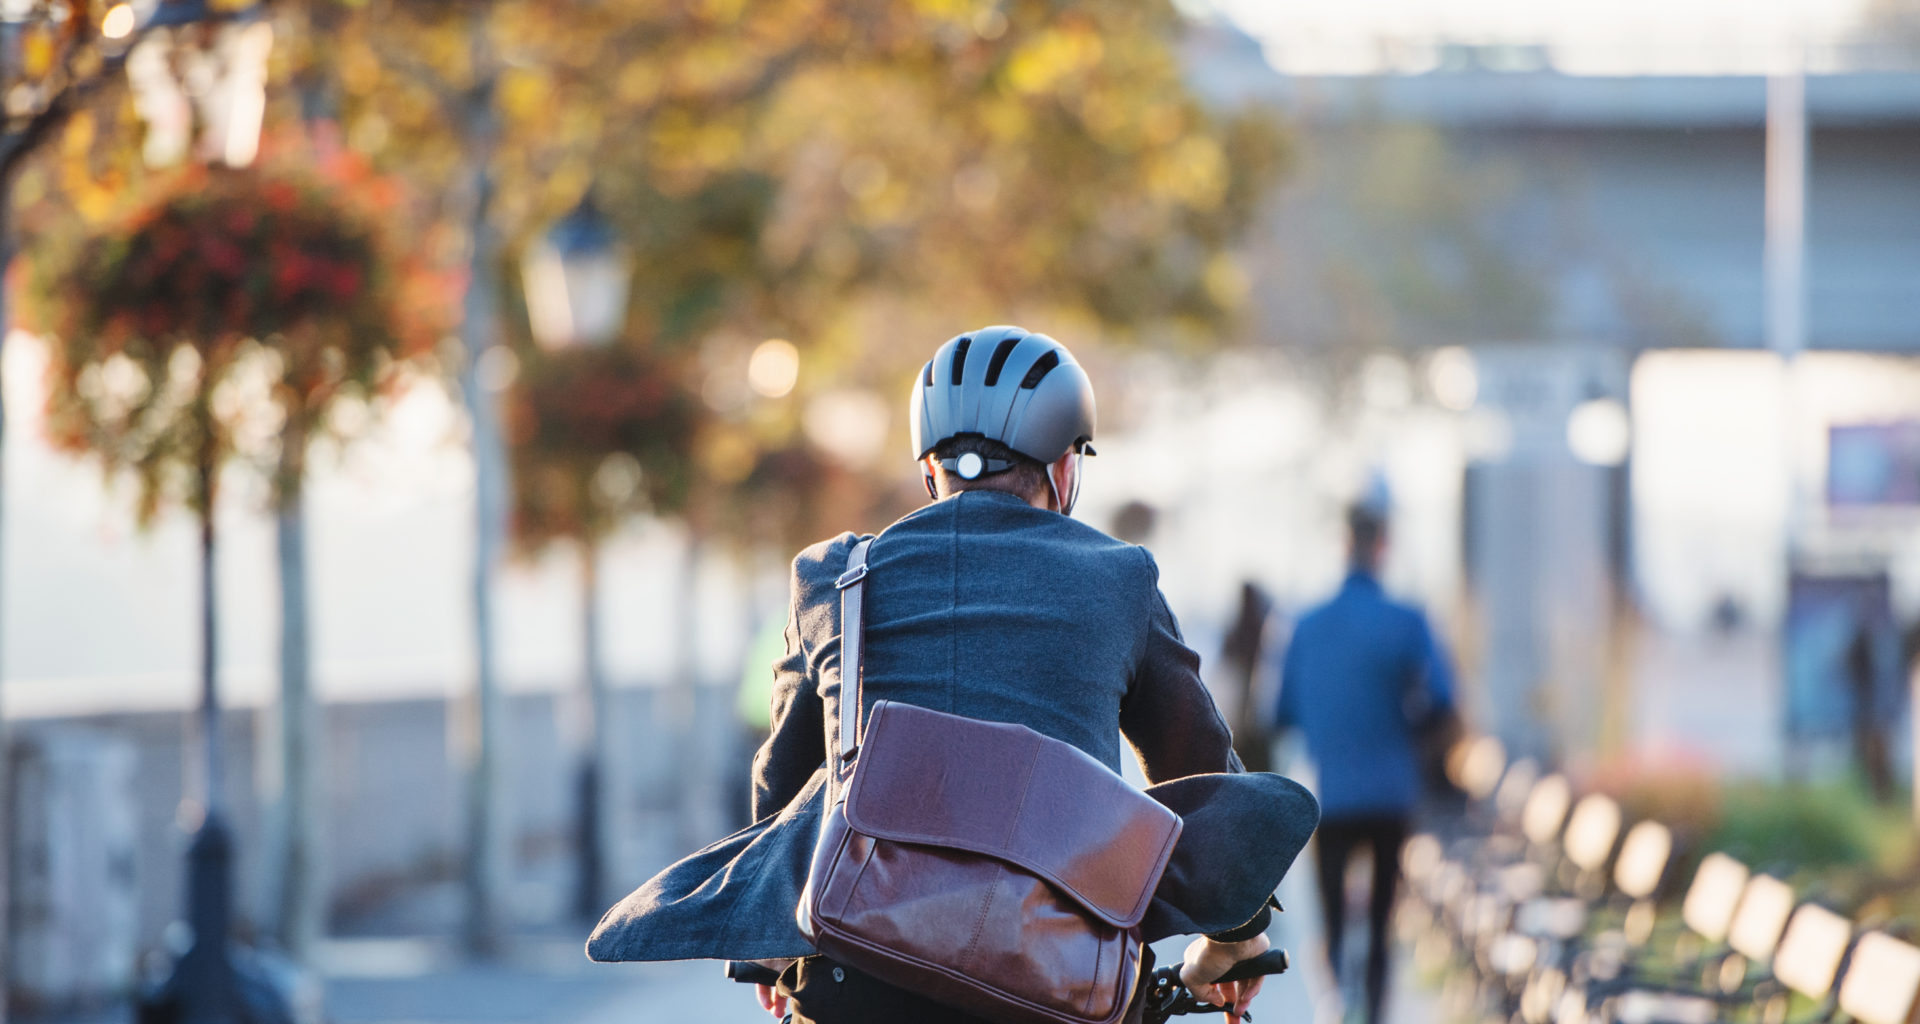 Blog: Cycling is ten times more important than electric cars for reaching net-zero cities